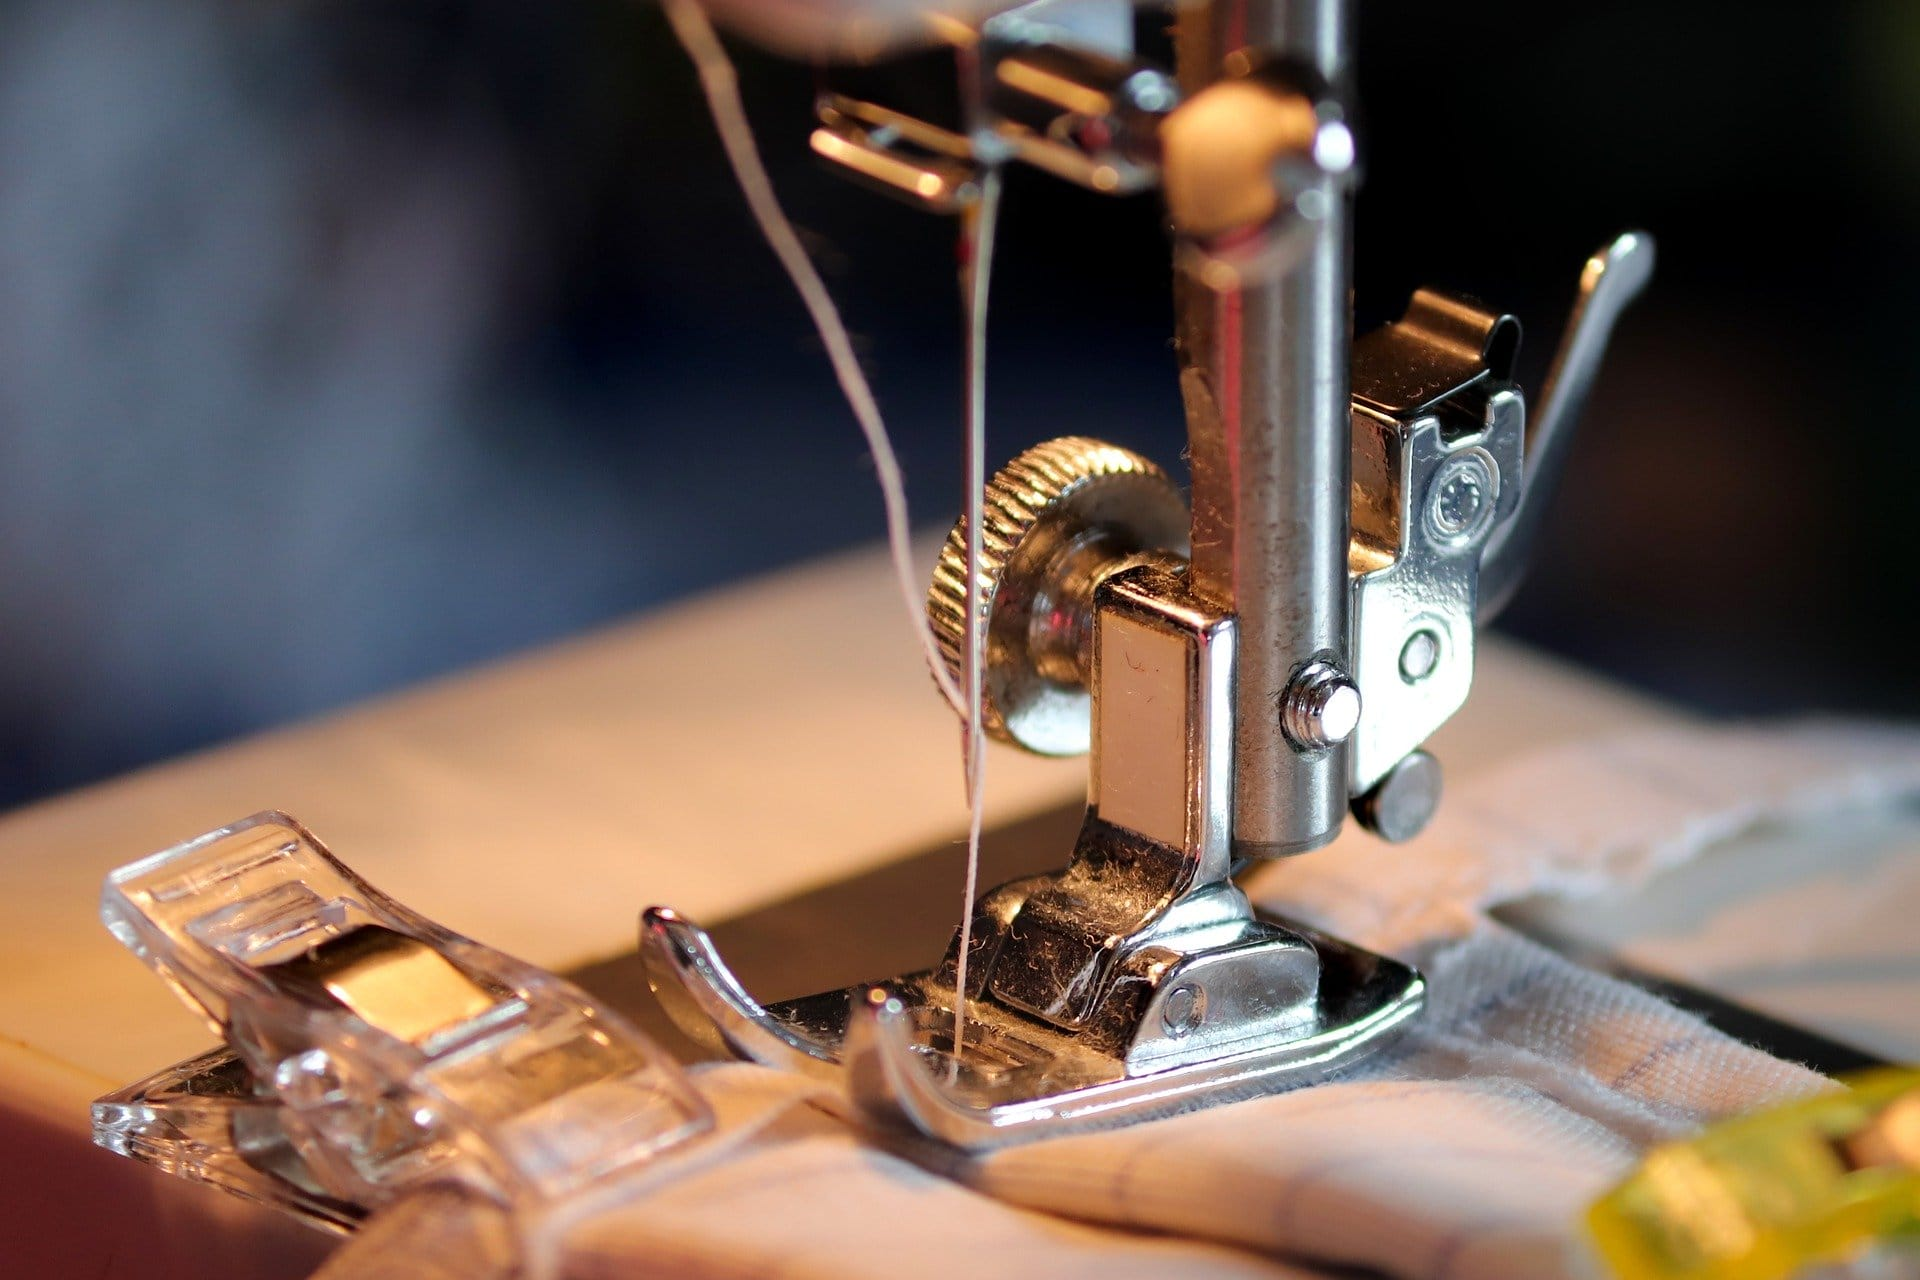 Can I use embroidery thread in my sewing machine?